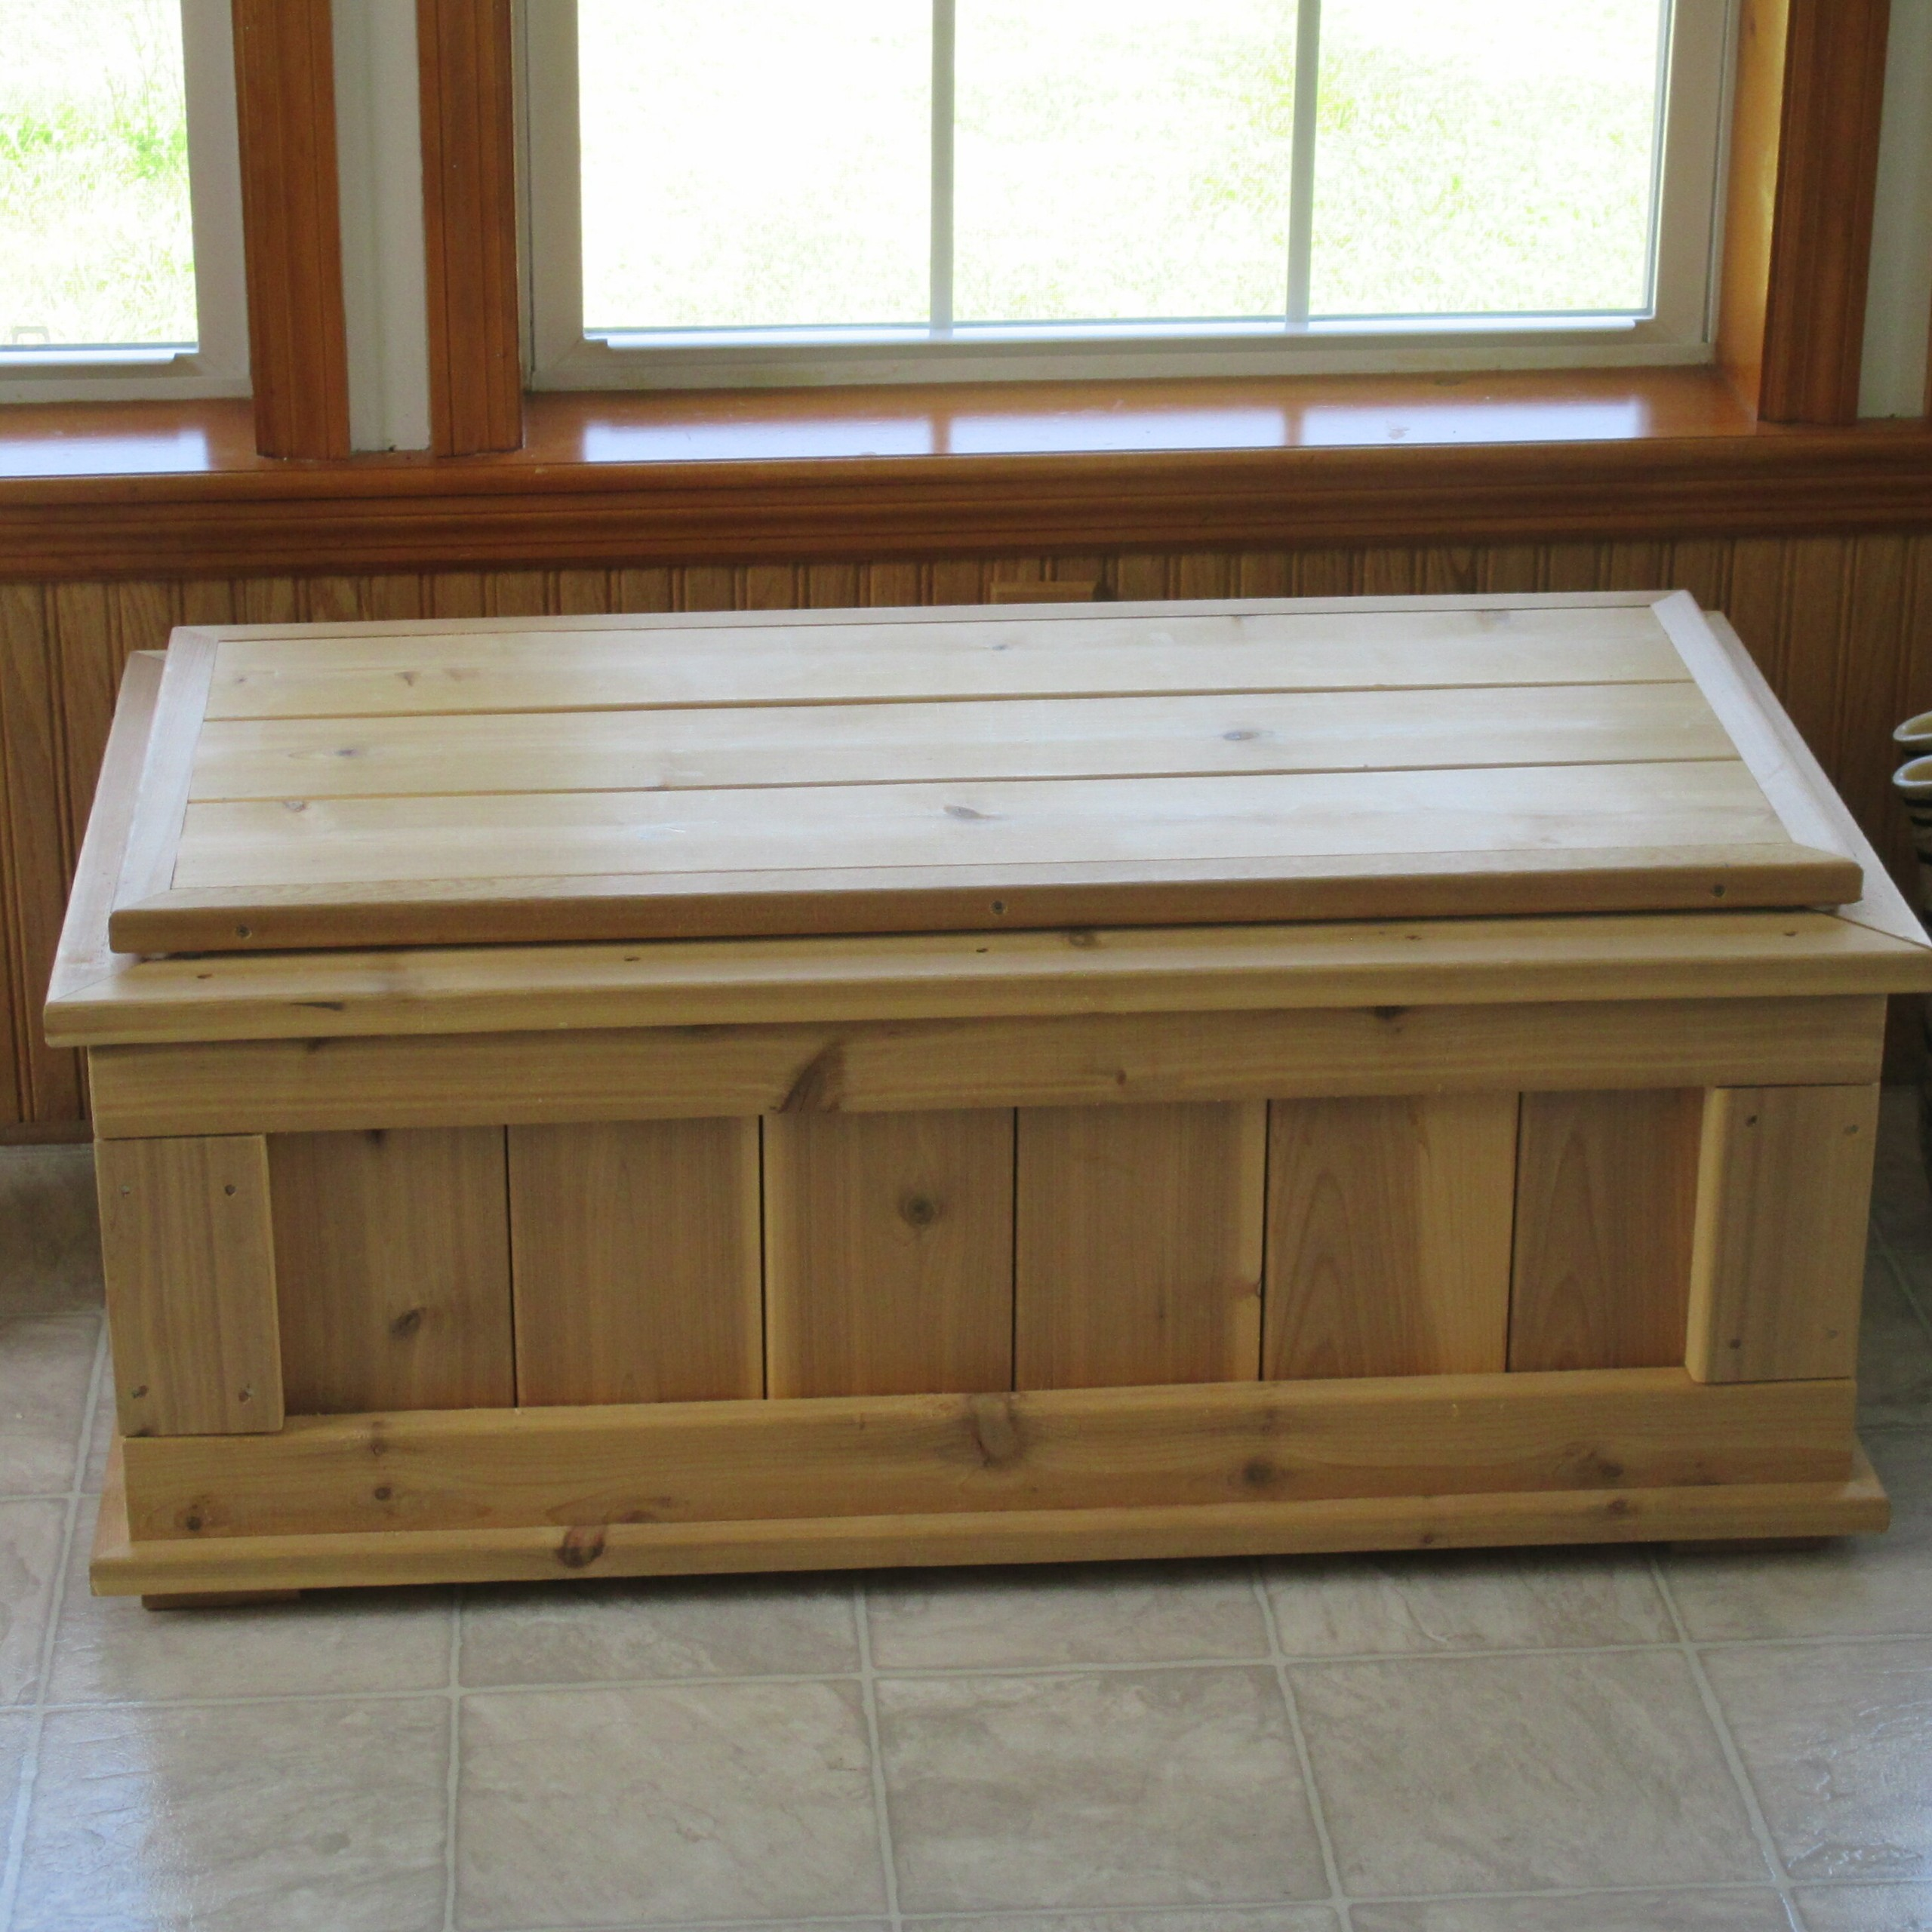 Superieur Natural Cedar Woood Outdoor Storage Bench